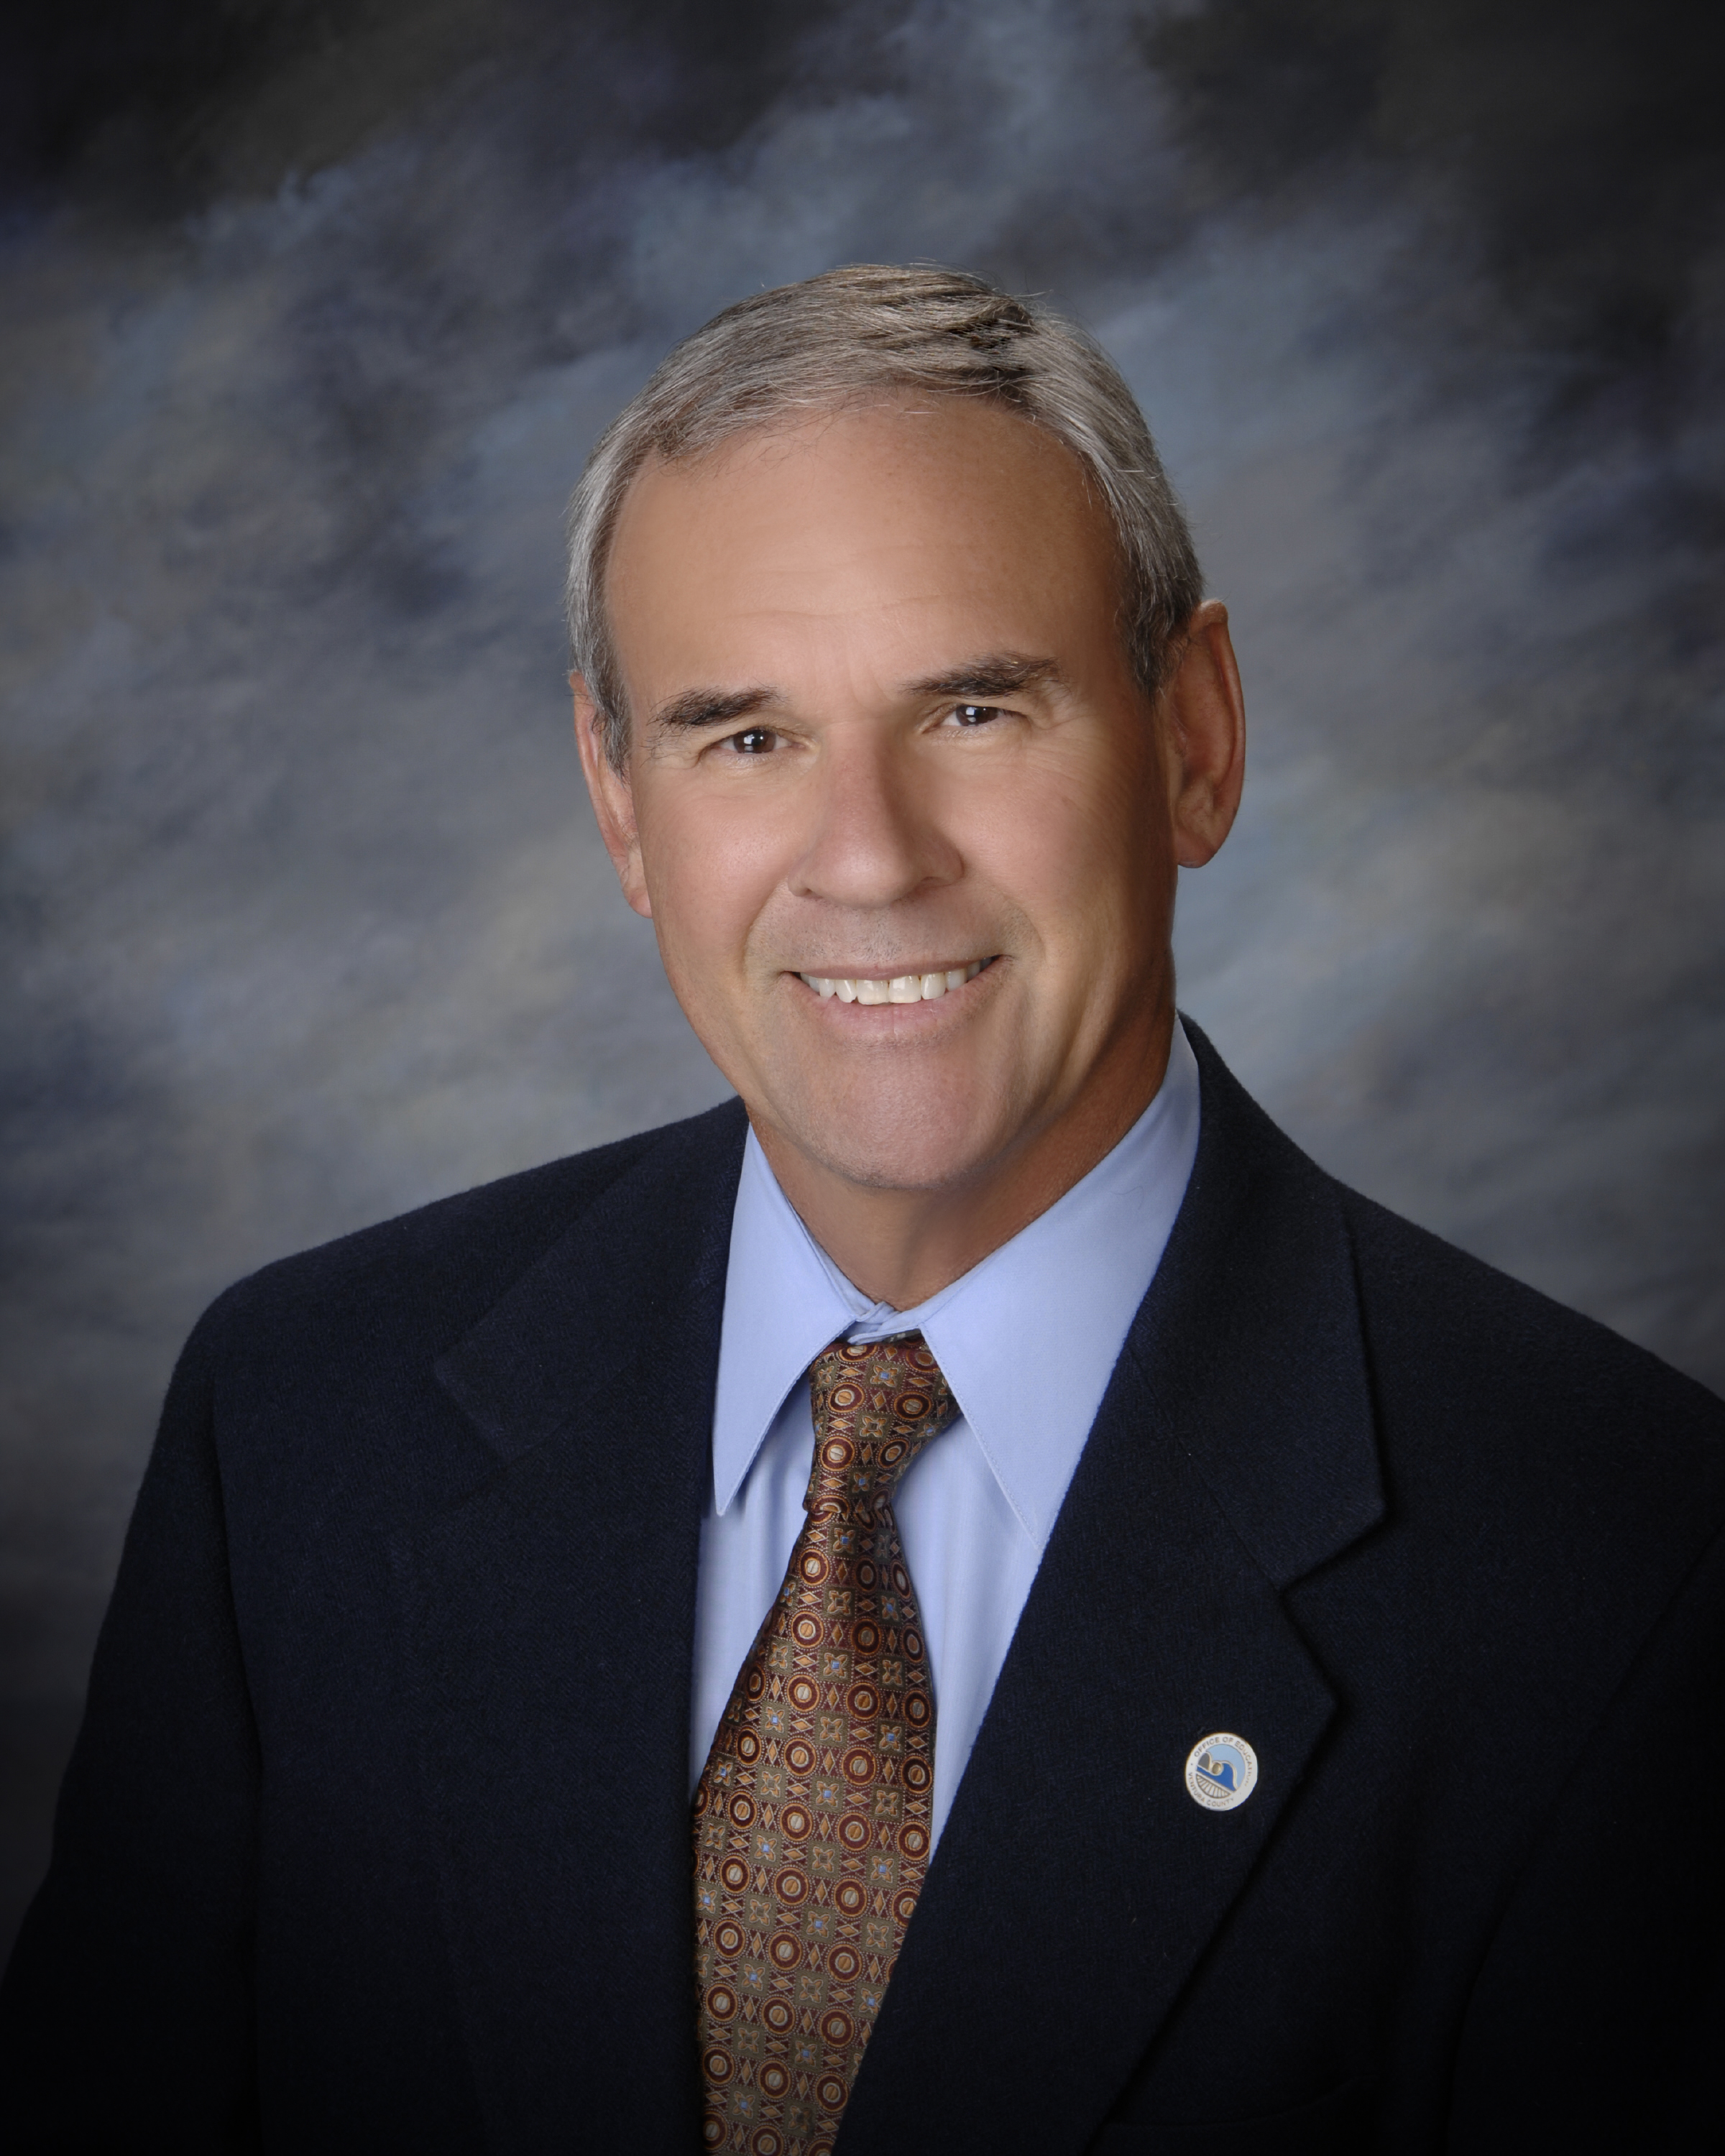 Superintendent Mantooth: Protect our Children by Fully Immunizing Them